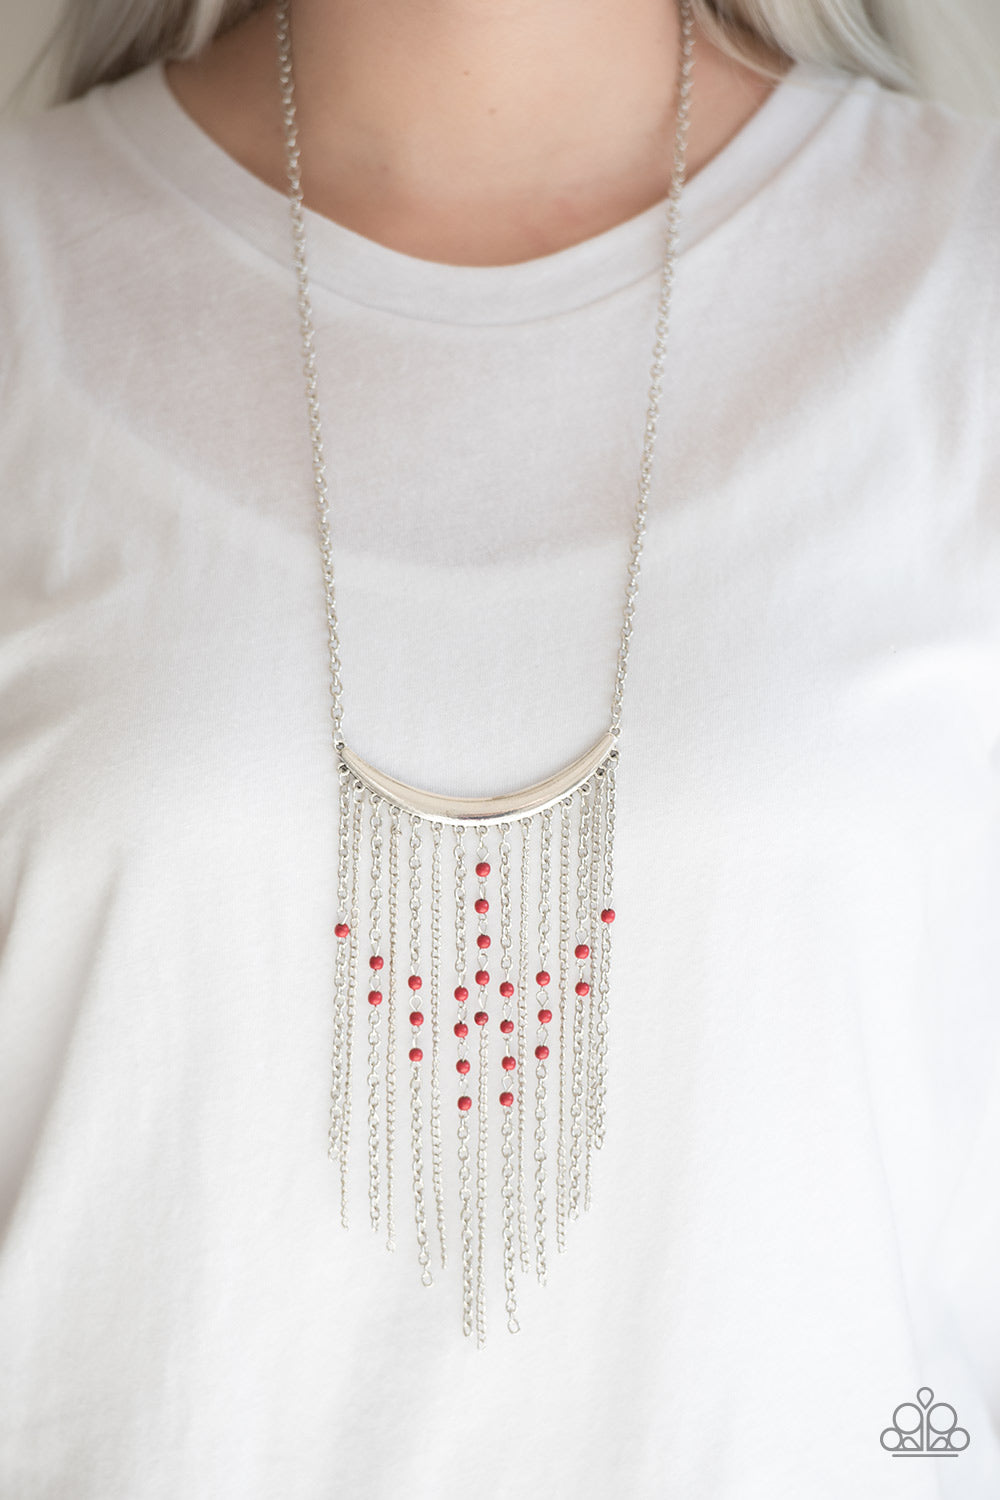 Runaway Rumba - Red Paparazzi Necklace - Pink Dragon Jewels